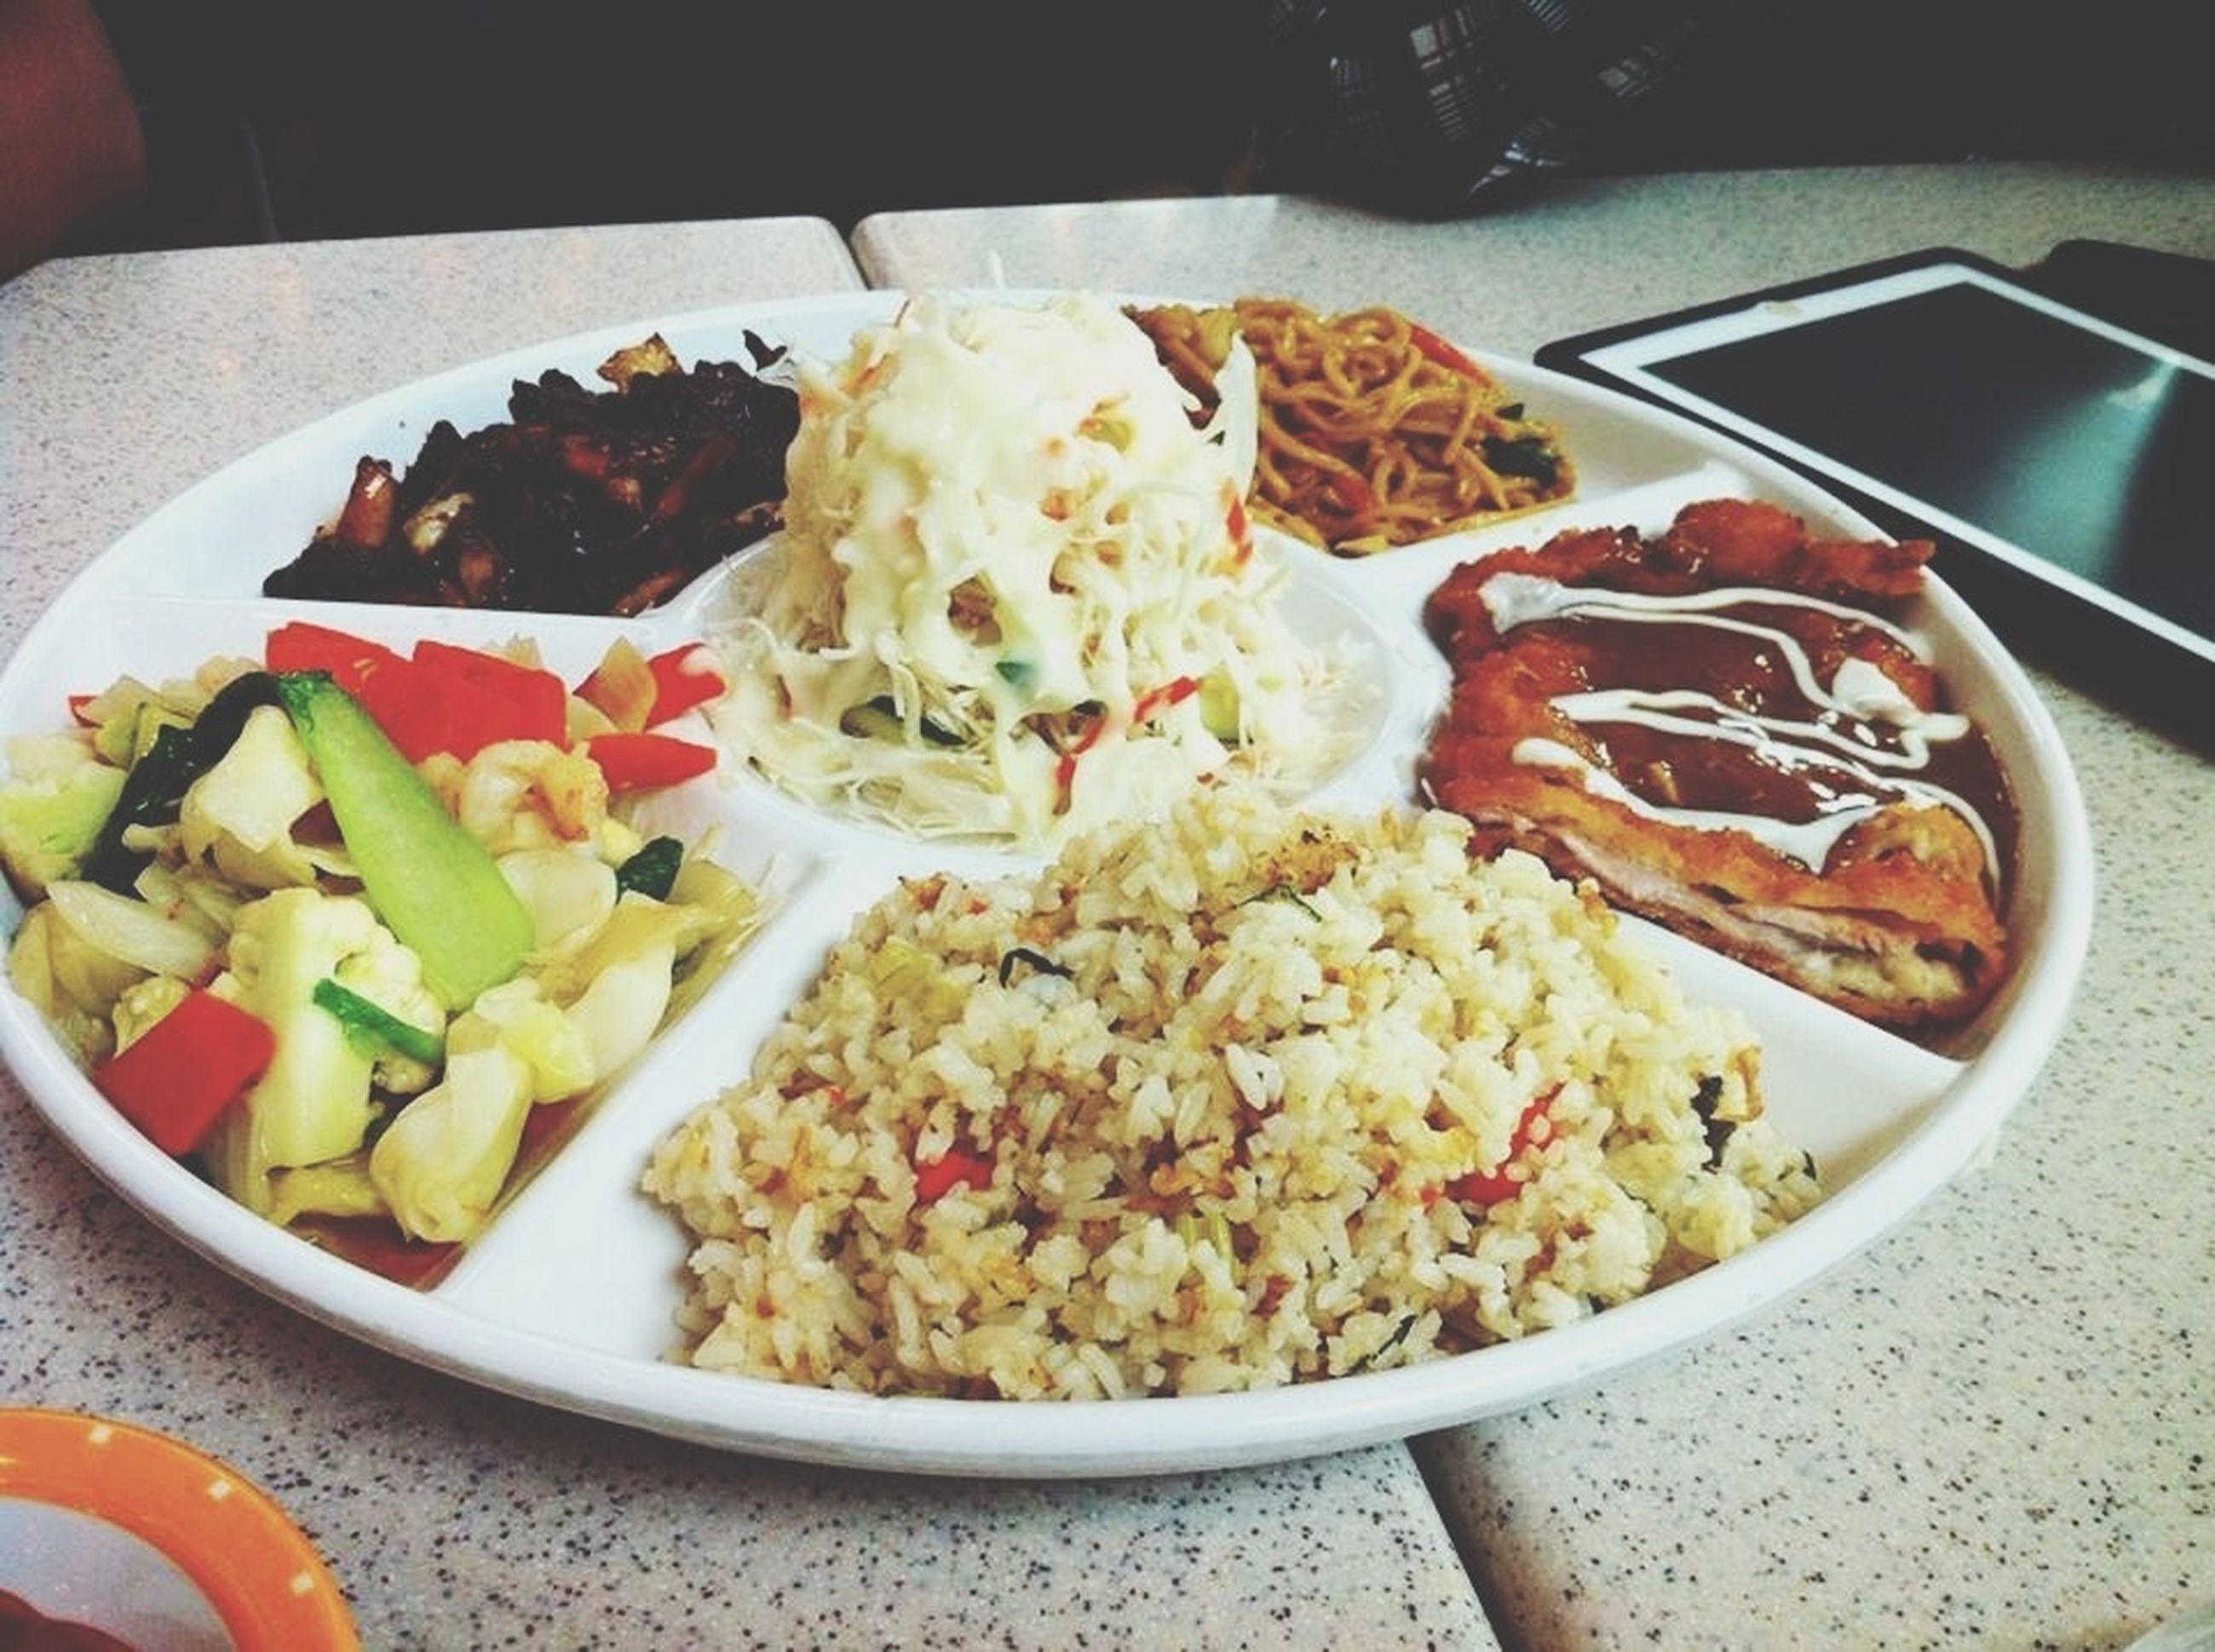 food and drink, food, freshness, indoors, ready-to-eat, healthy eating, plate, still life, close-up, meal, serving size, table, bowl, vegetable, indulgence, salad, high angle view, seafood, served, no people